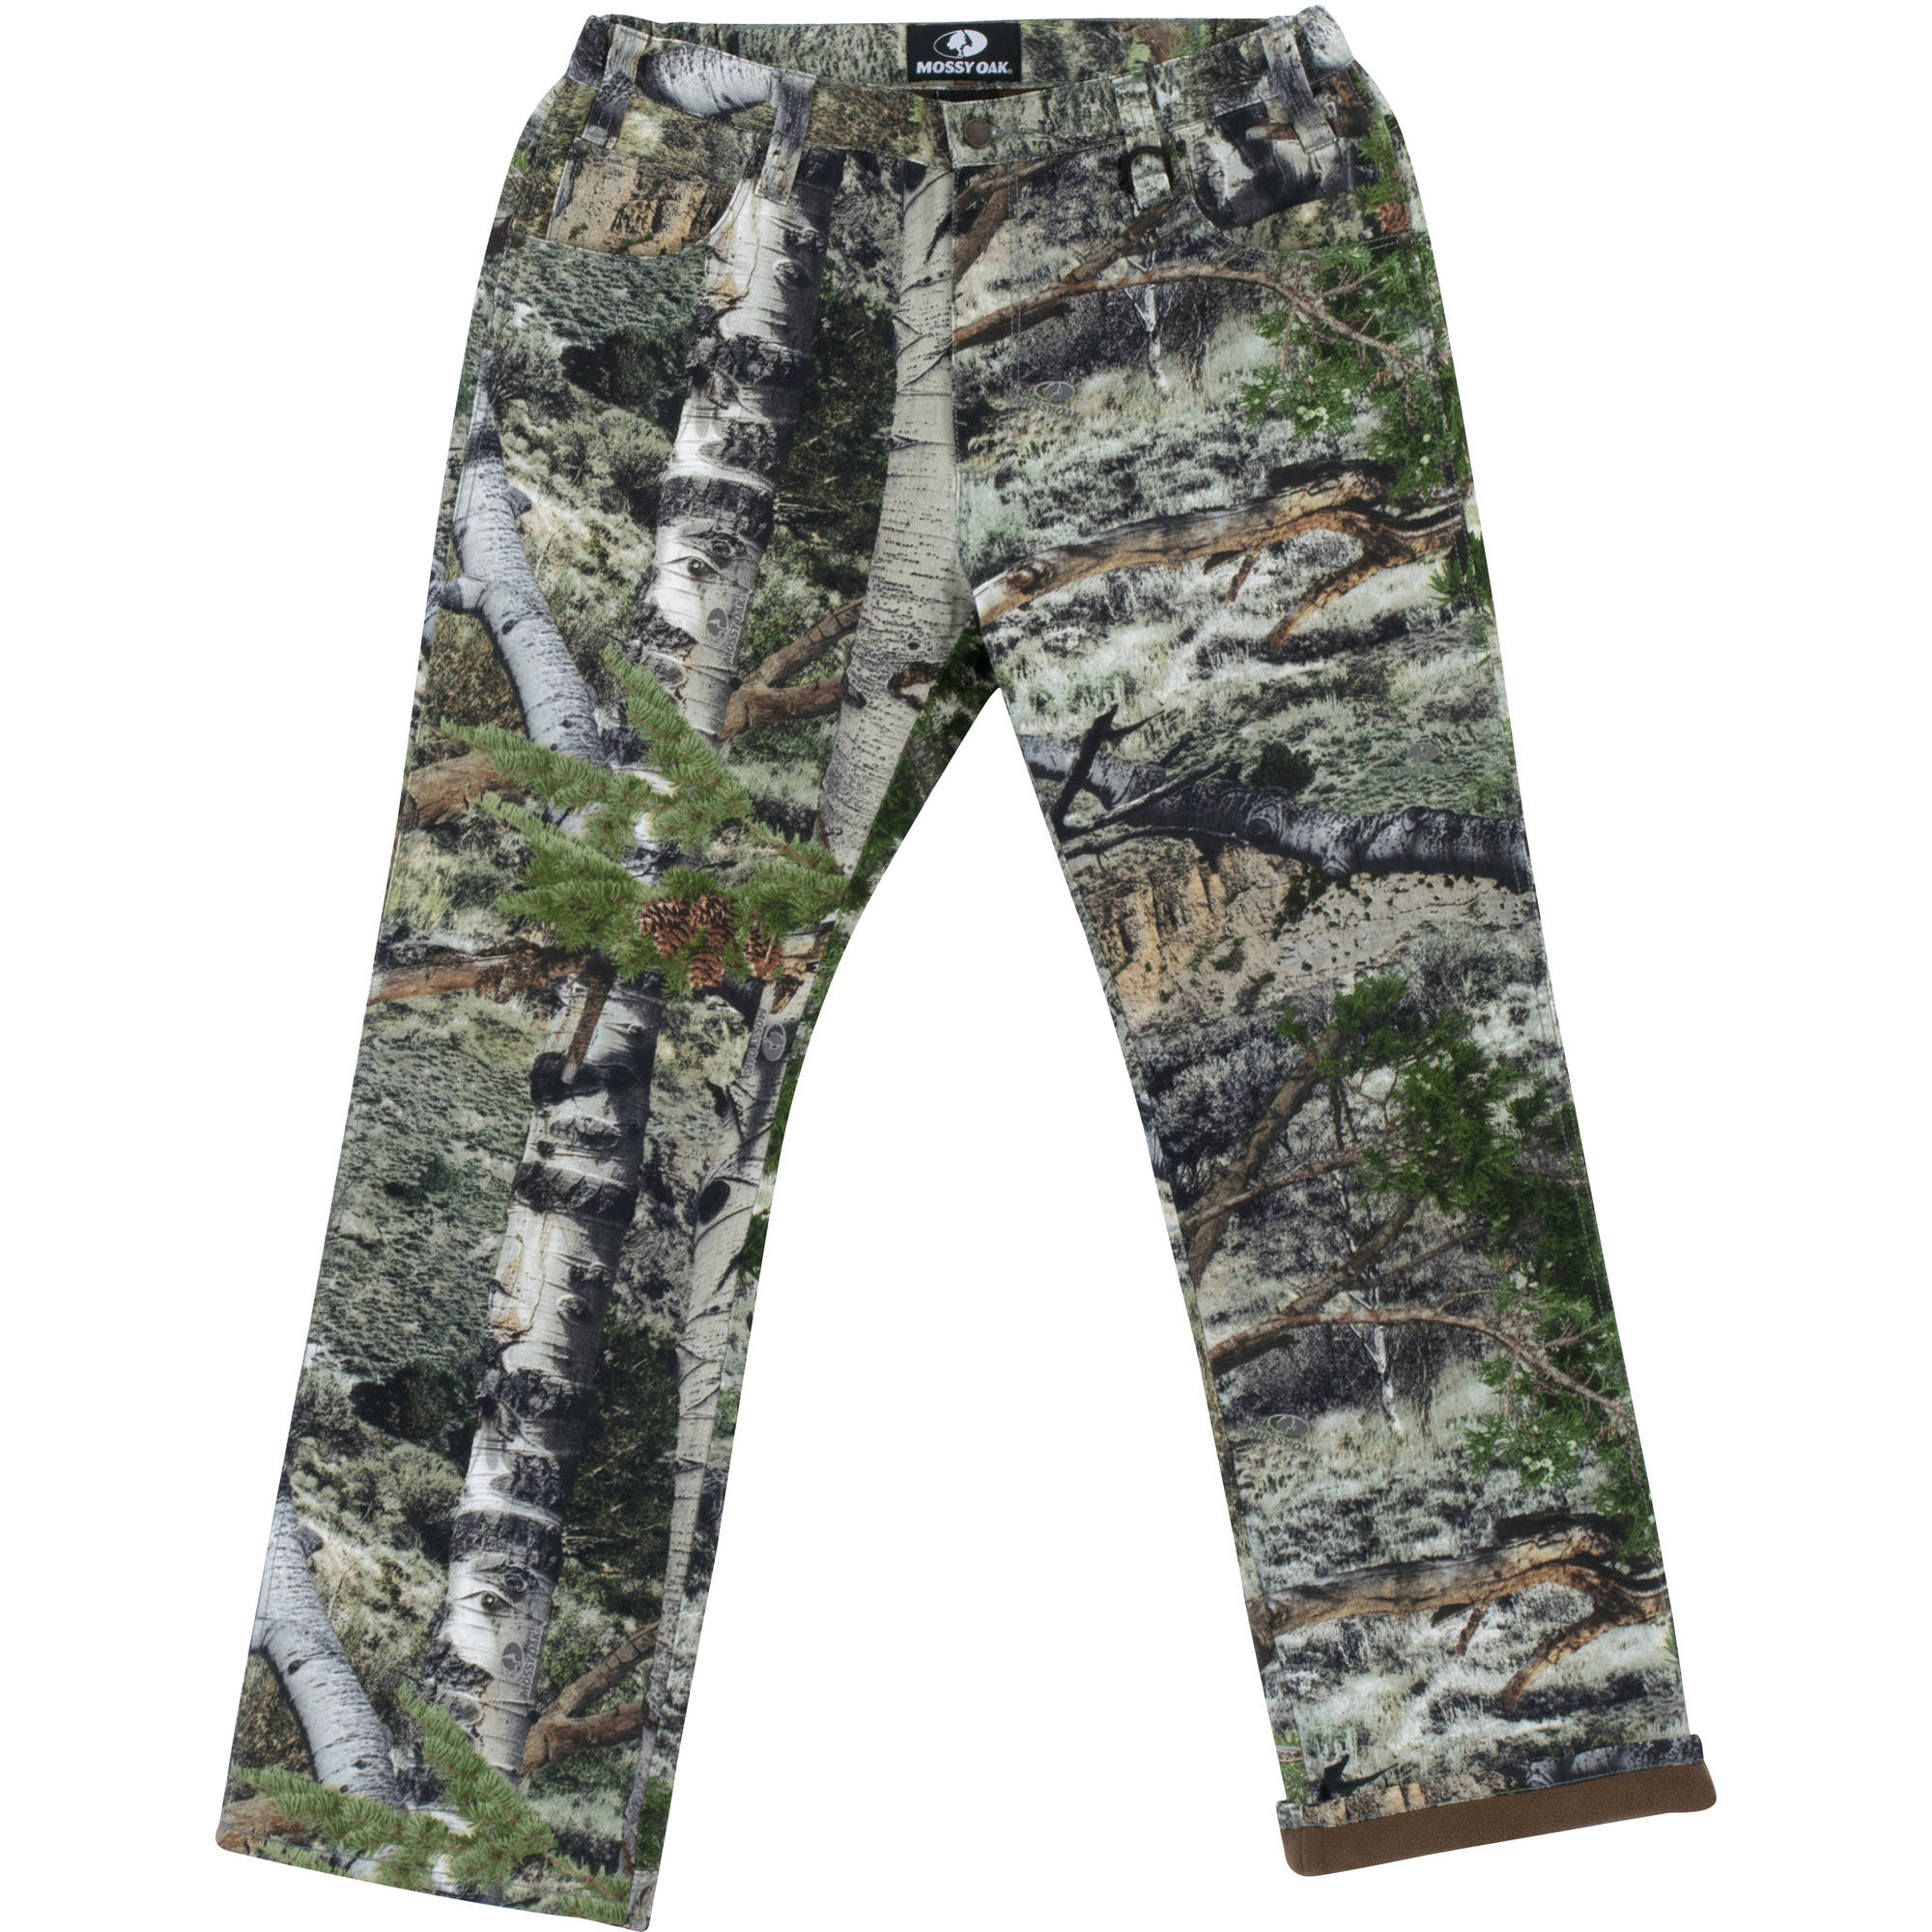 Mossy Oak Men's 5-Pocket Lined Pants, Available in Multiple Patterns